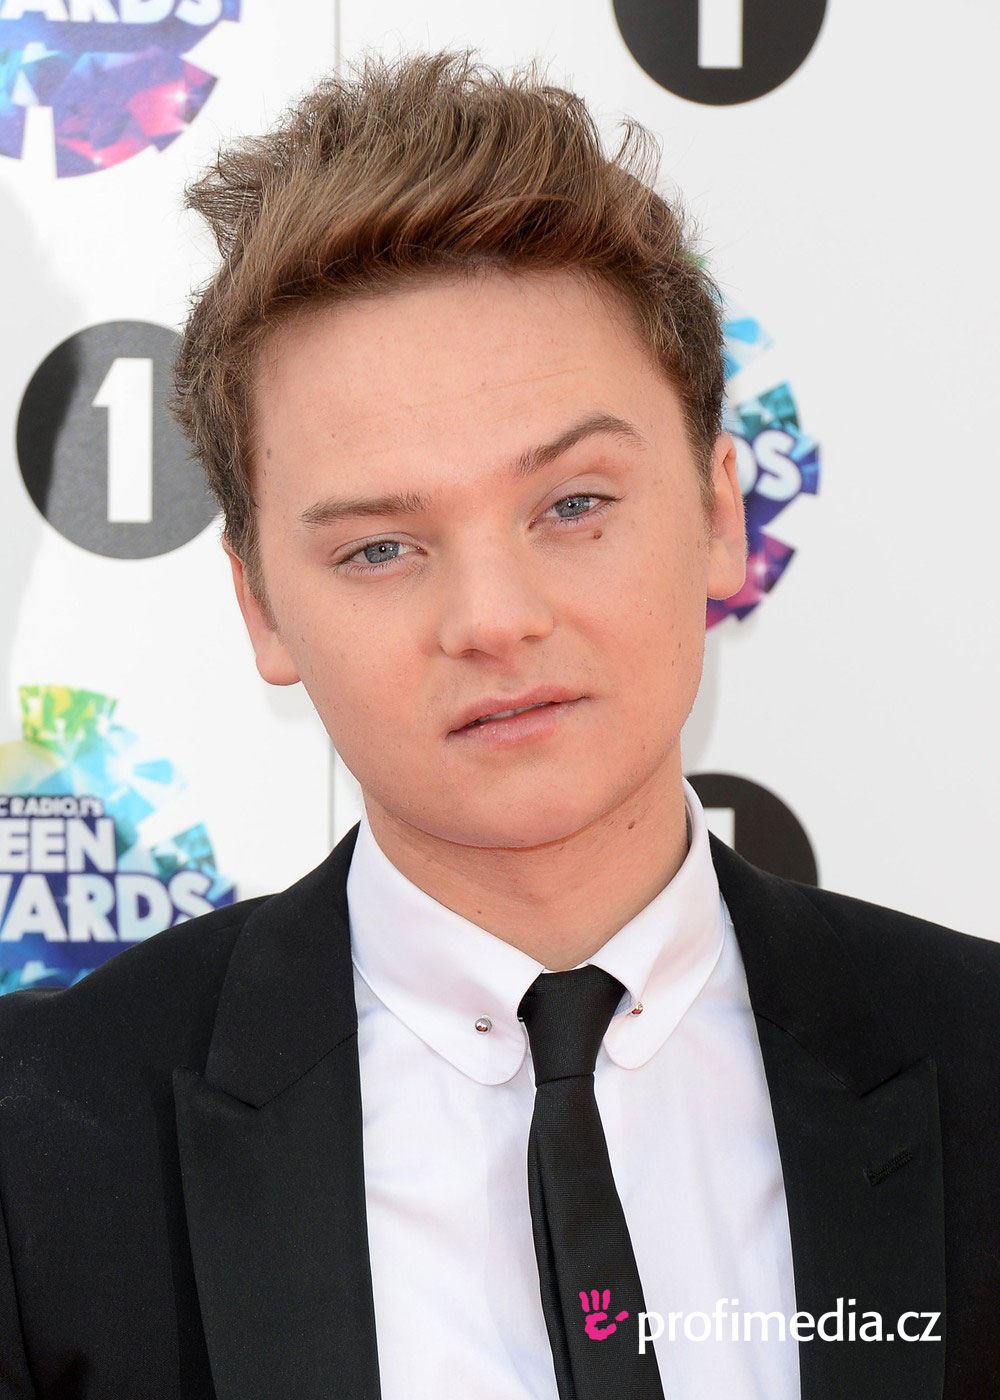 Conor Maynard Hairstyle Easyhairstyler